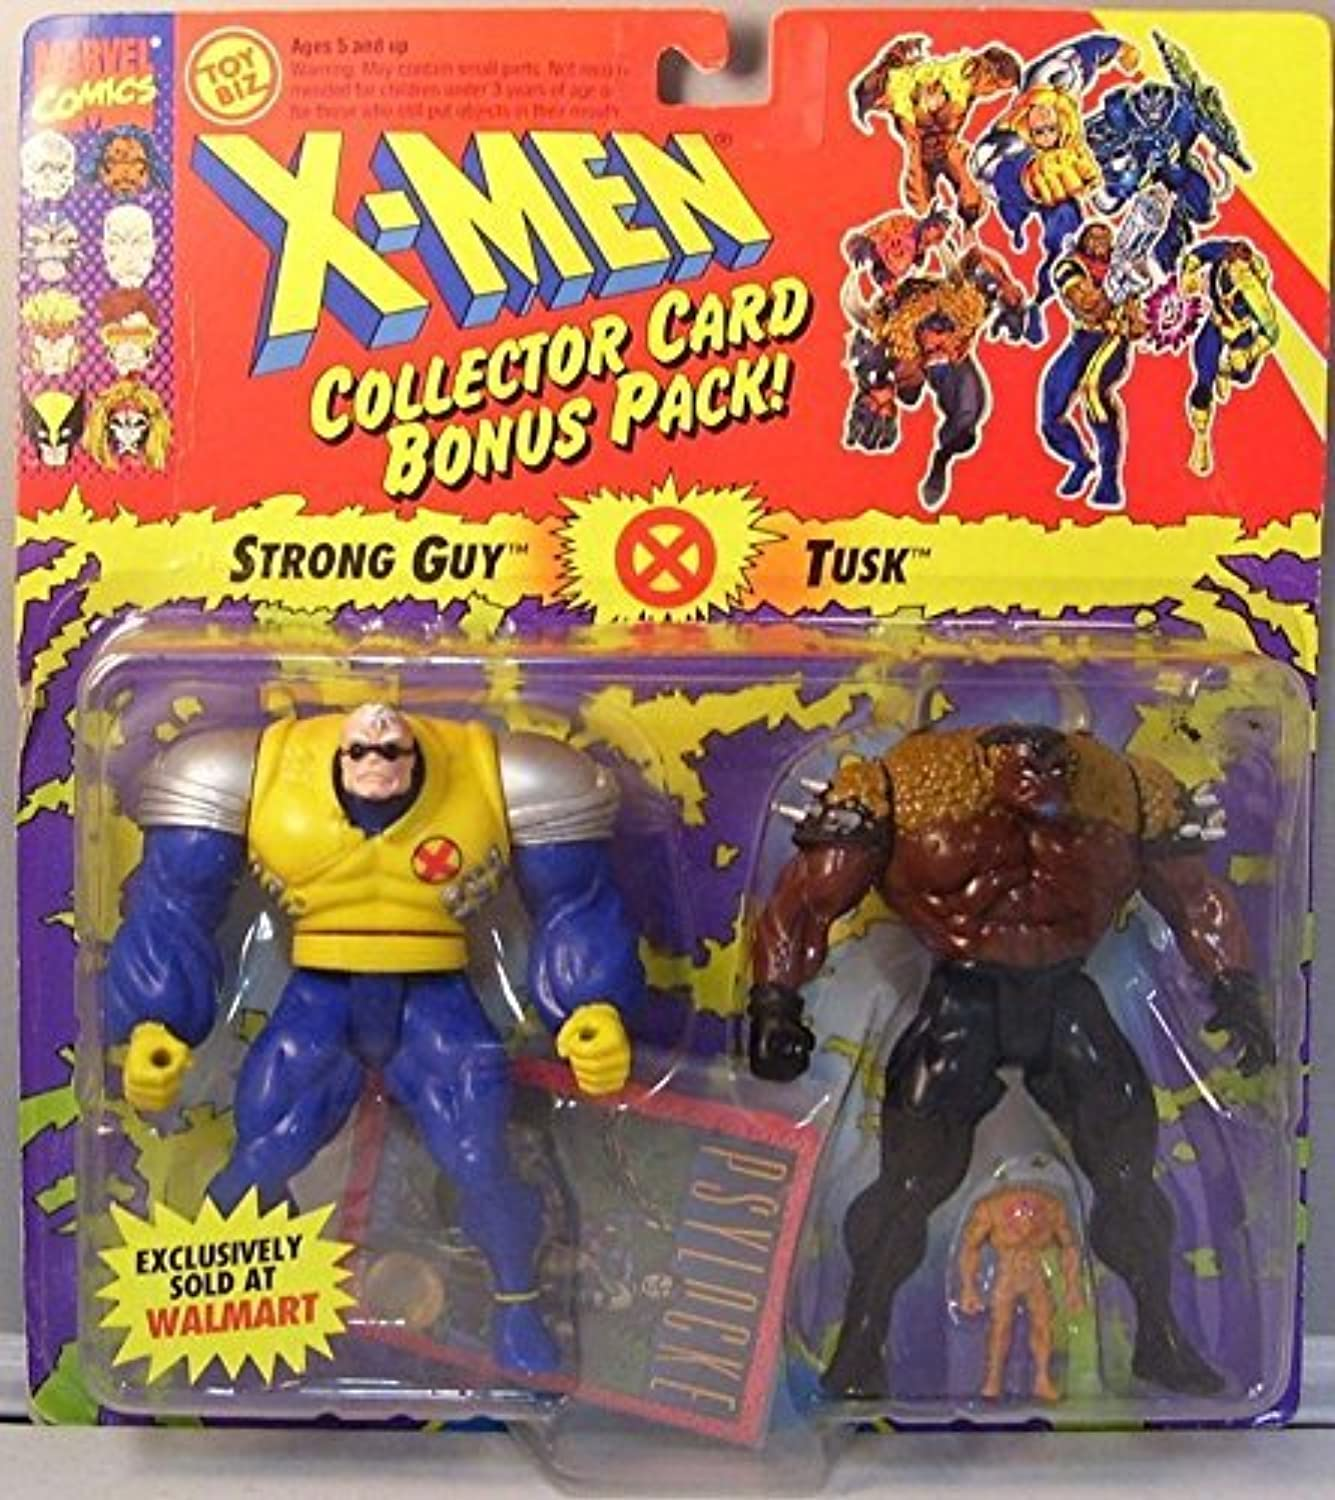 X-Men Collector Card Bonus Pack Strong Guy and Tusk Exclusive by X-Men Action Figures